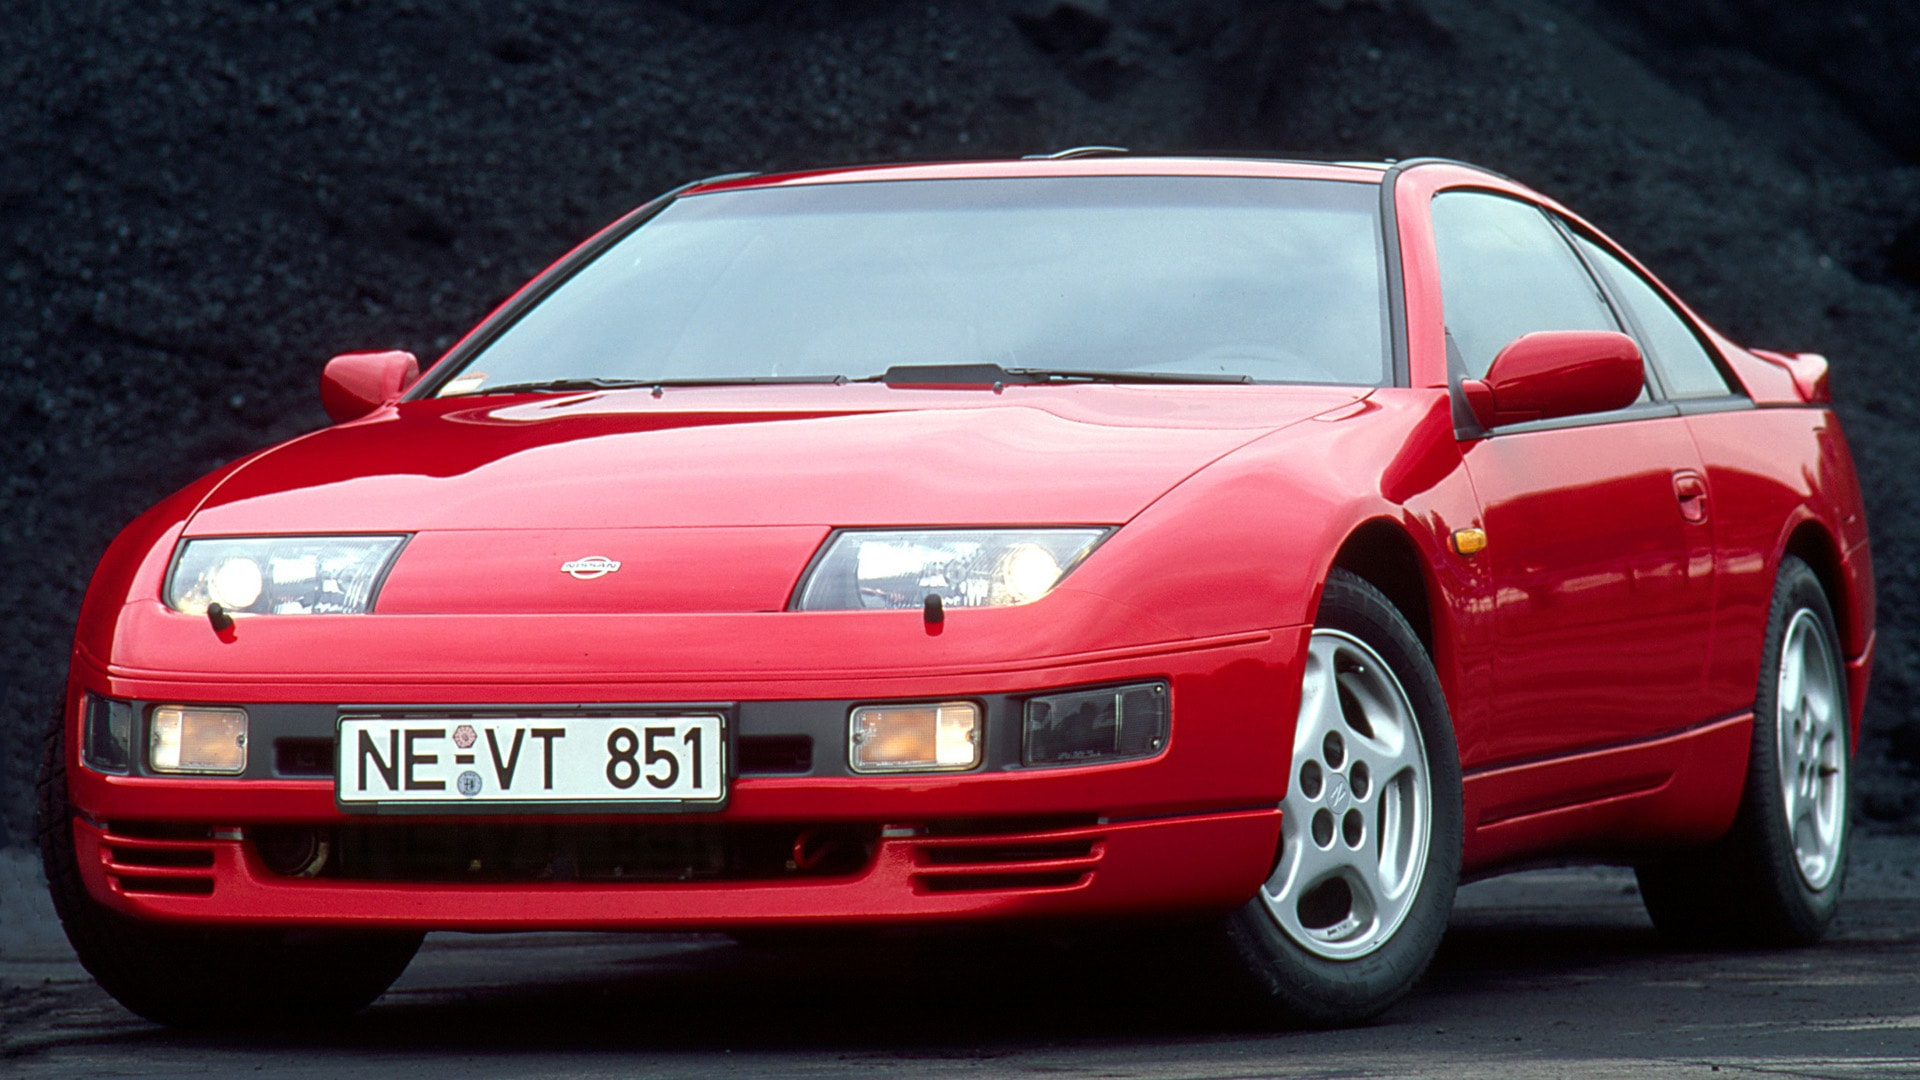 1990 nissan 300zx twin turbo hd desktop wallpapers | 7wallpapers